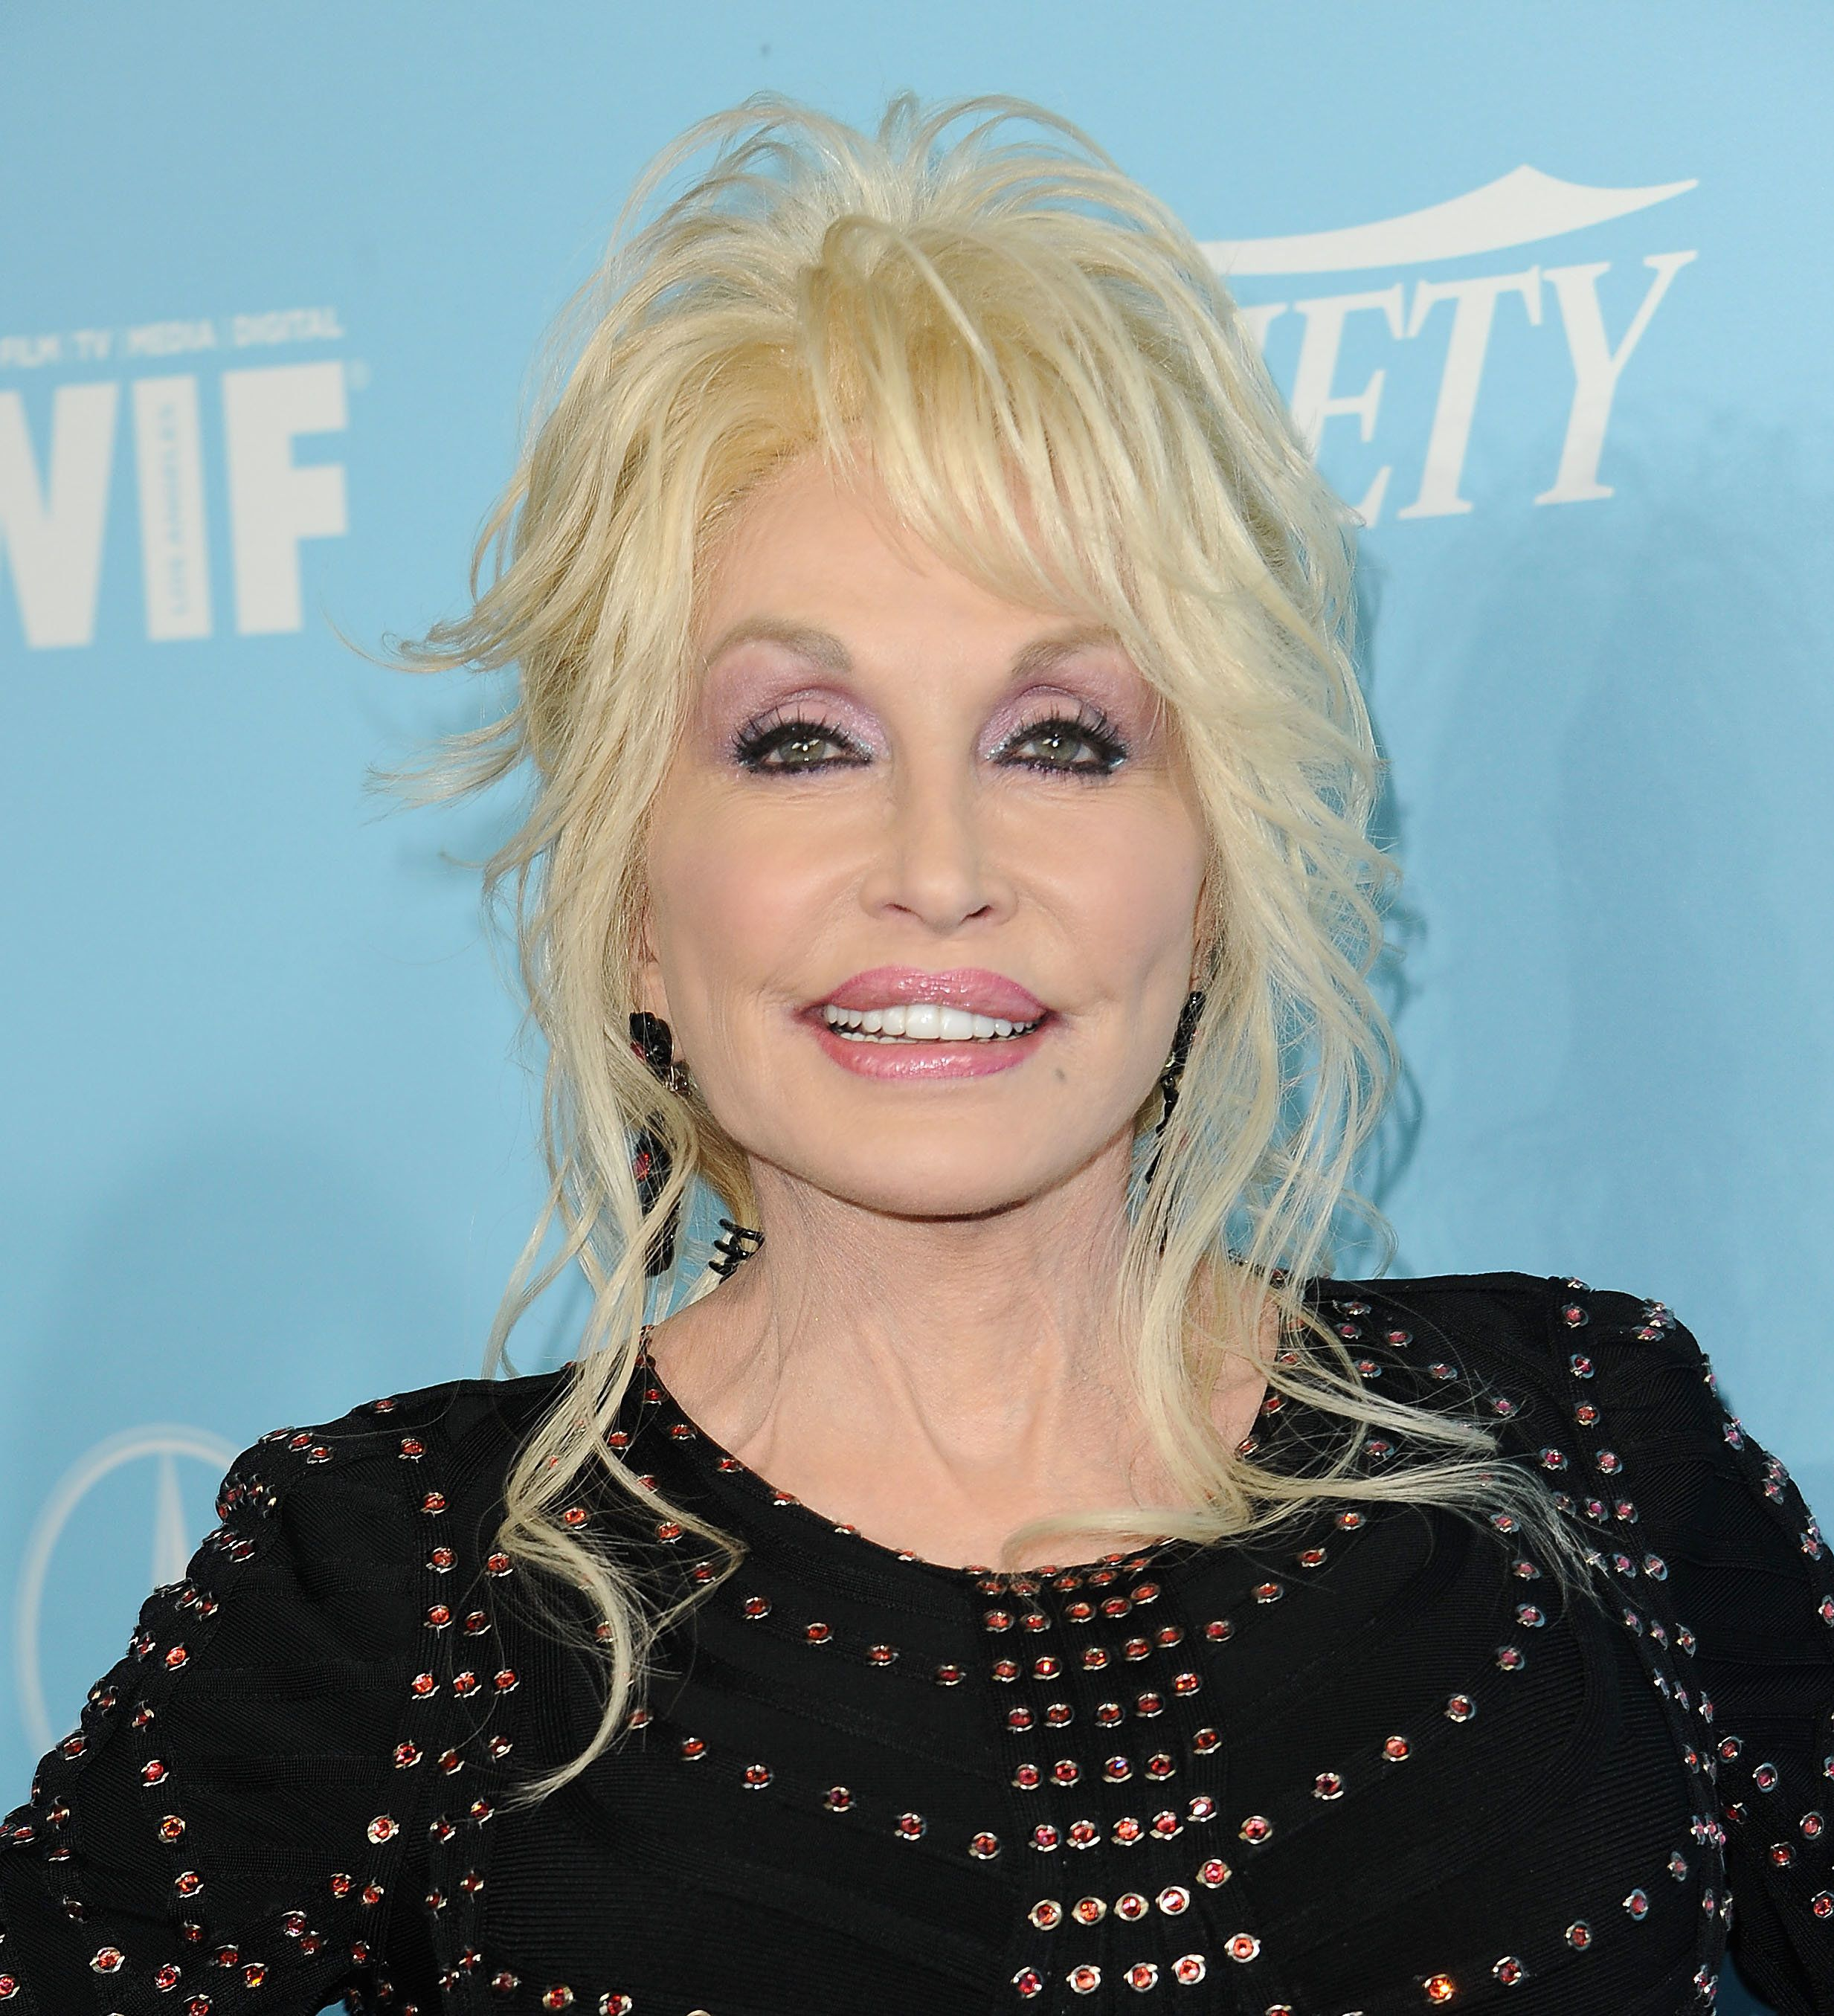 Dolly Parton Talks New Album And Tells Us Why She's Still Not Done Trying New